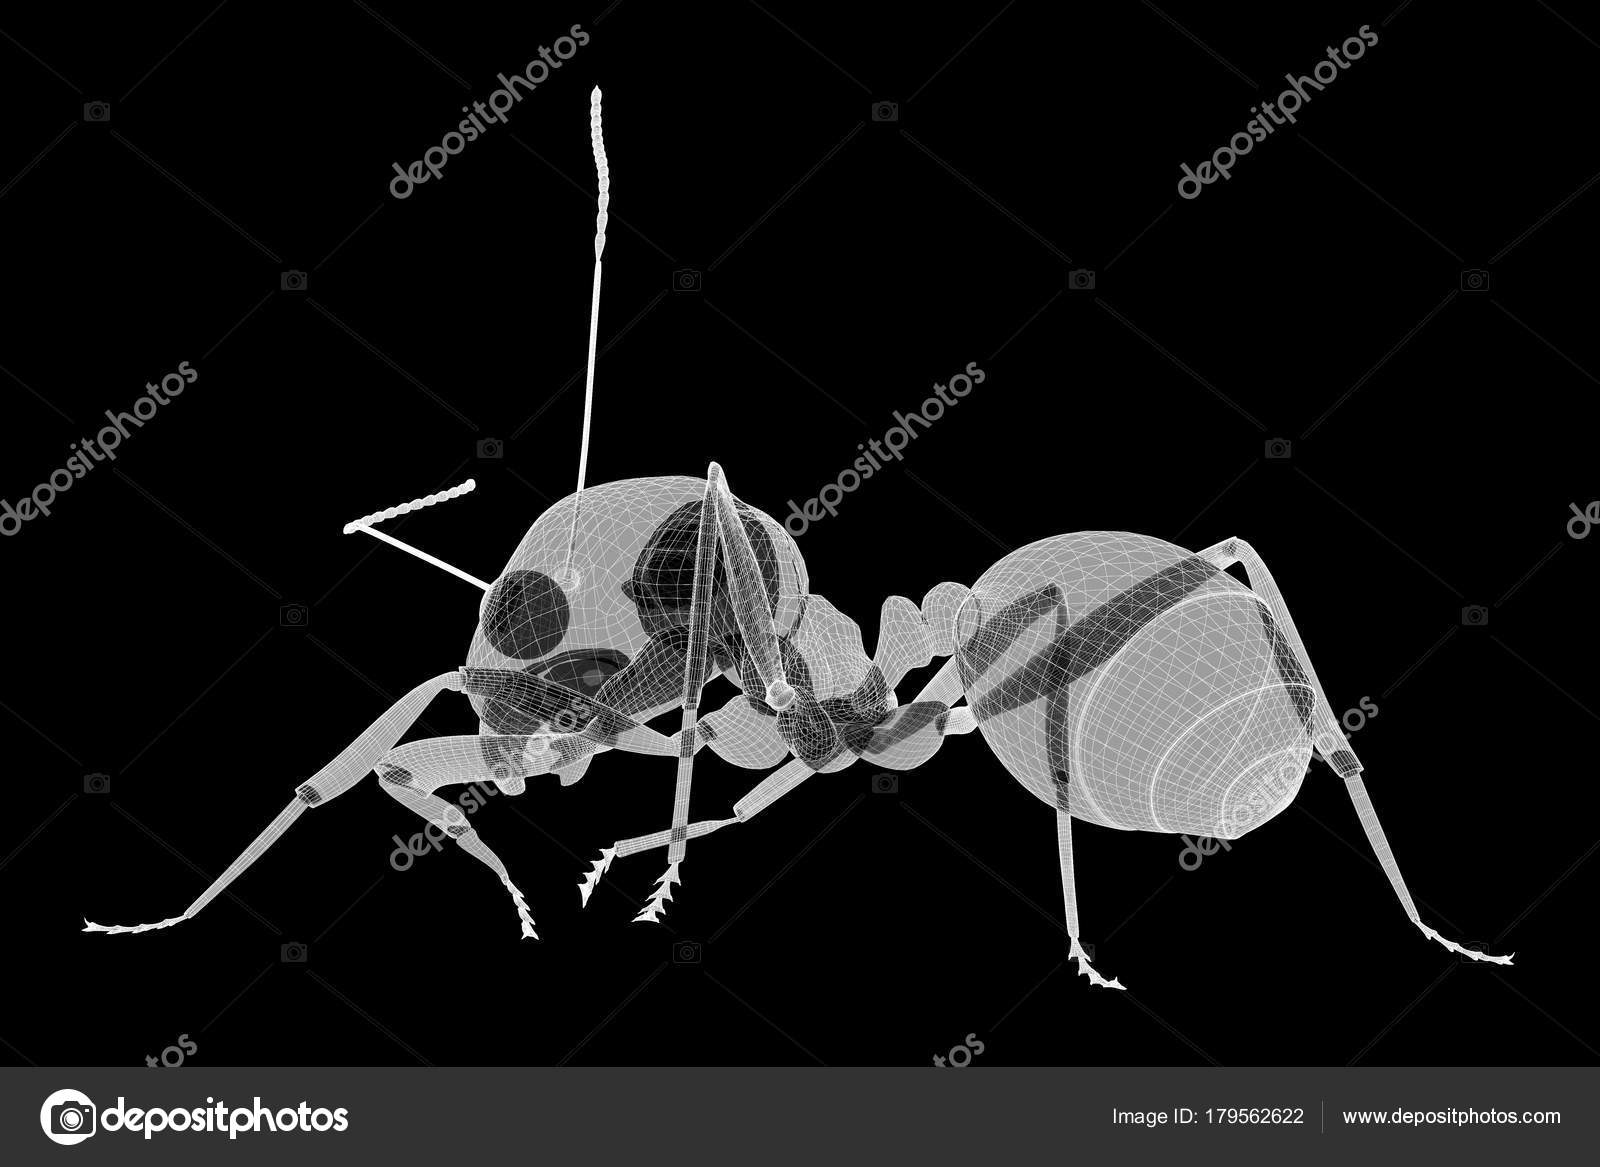 ant in wire carcass — Stock Photo © Podsolnukh #179562622